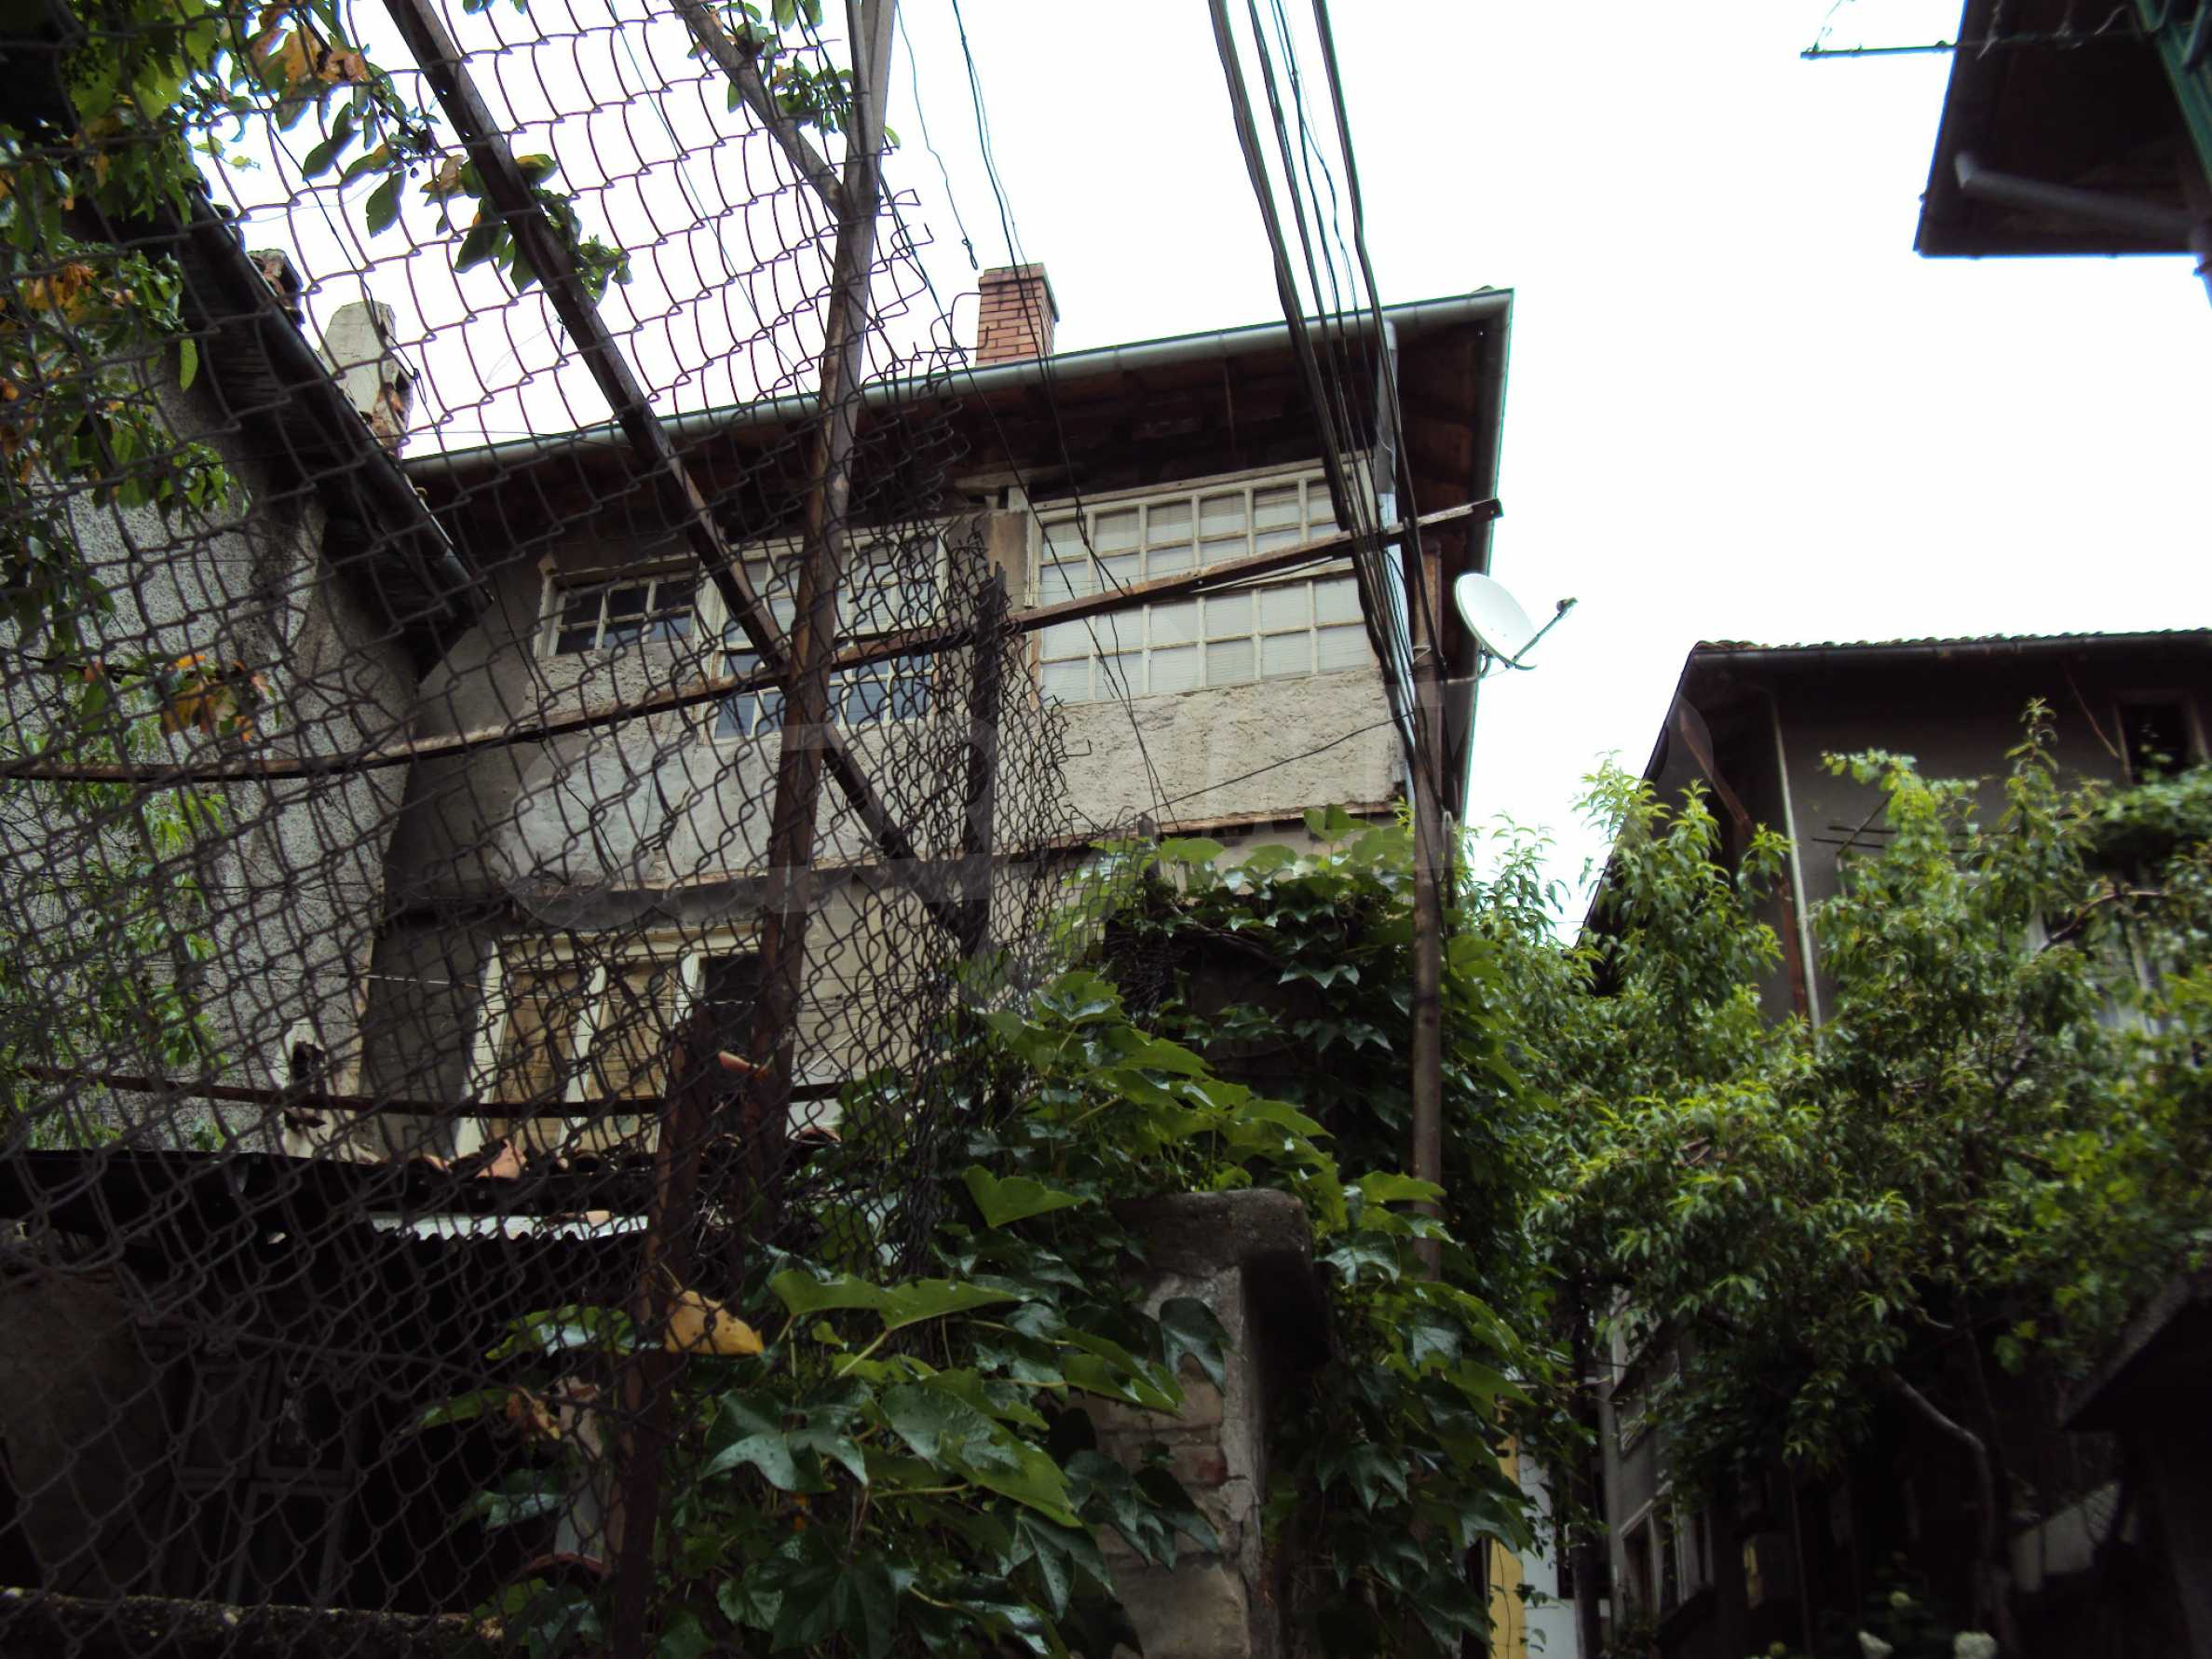 Traditional, spacious house located in the old part of Veliko Tarnovo 4